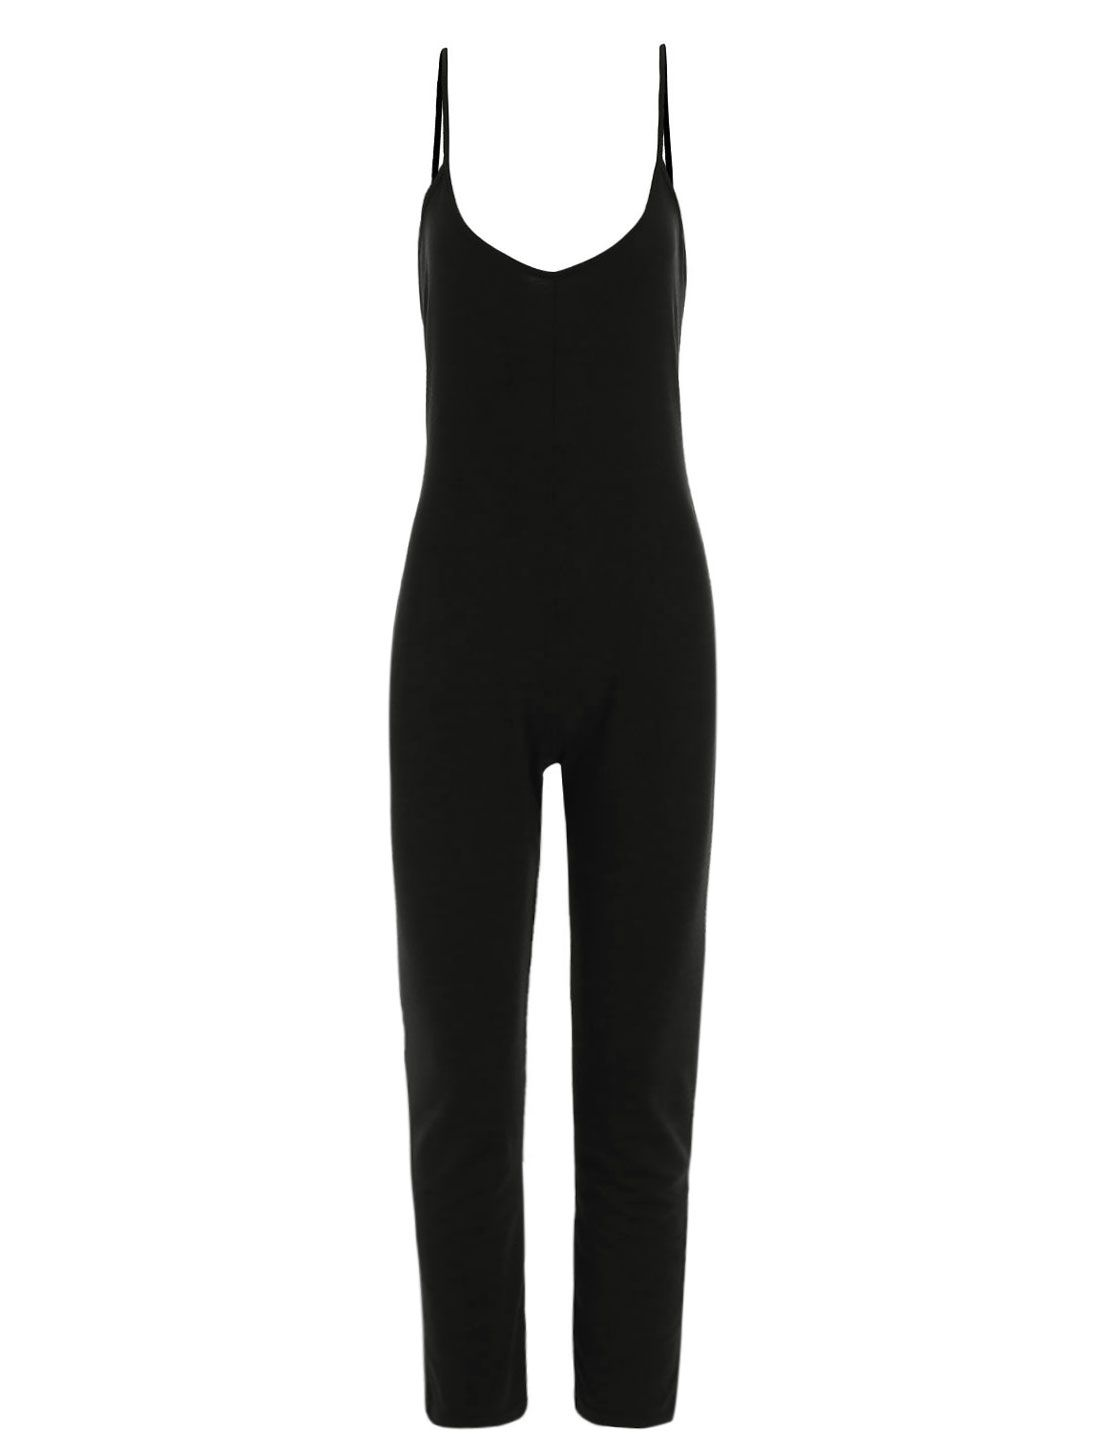 Allegra K Women's Spaghetti Strap Scoop Neck Backless Casual Jumpsuits Black (Size L / 12)